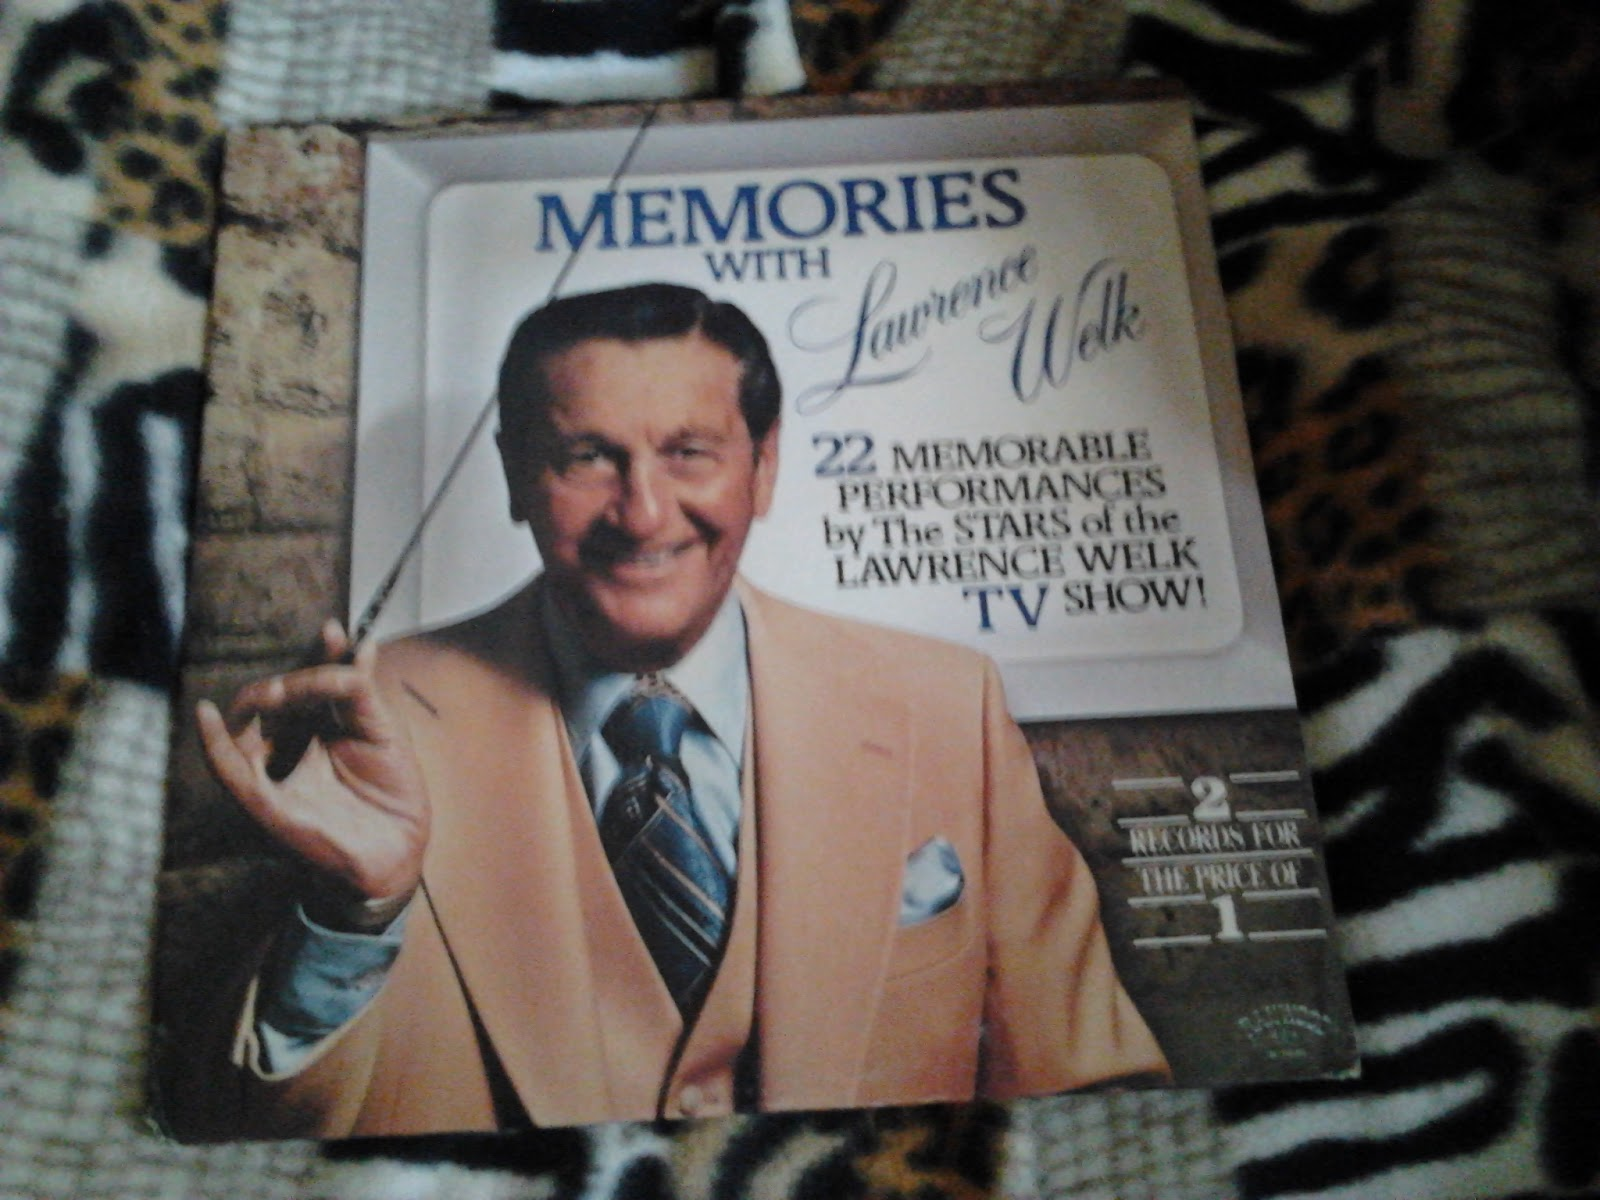 Lawrence Welk - Memories With Lawrence Welk